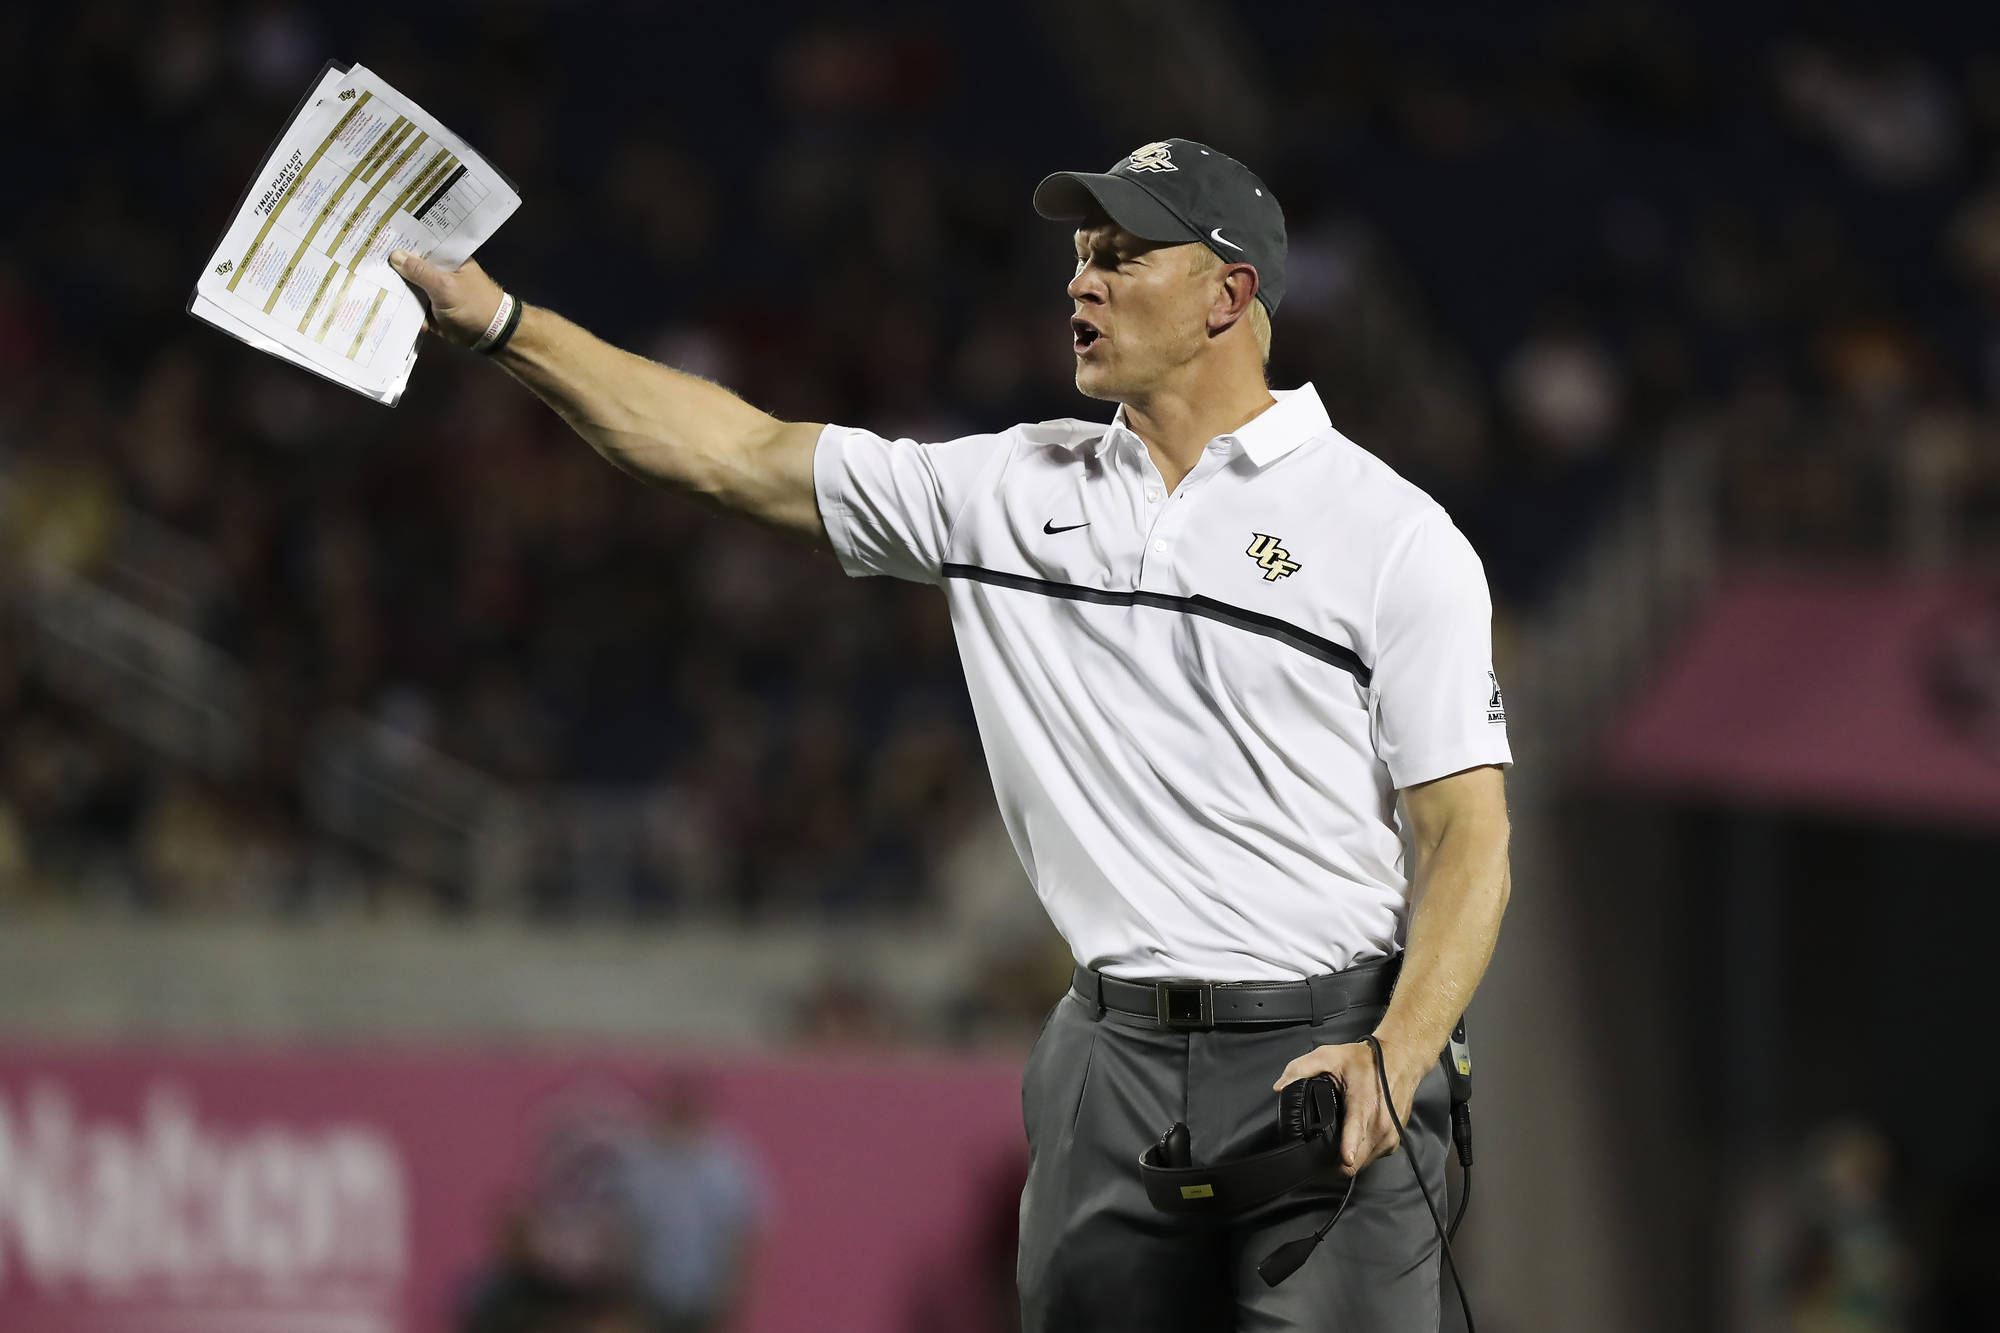 UCF Needs More Bone And Less Zone